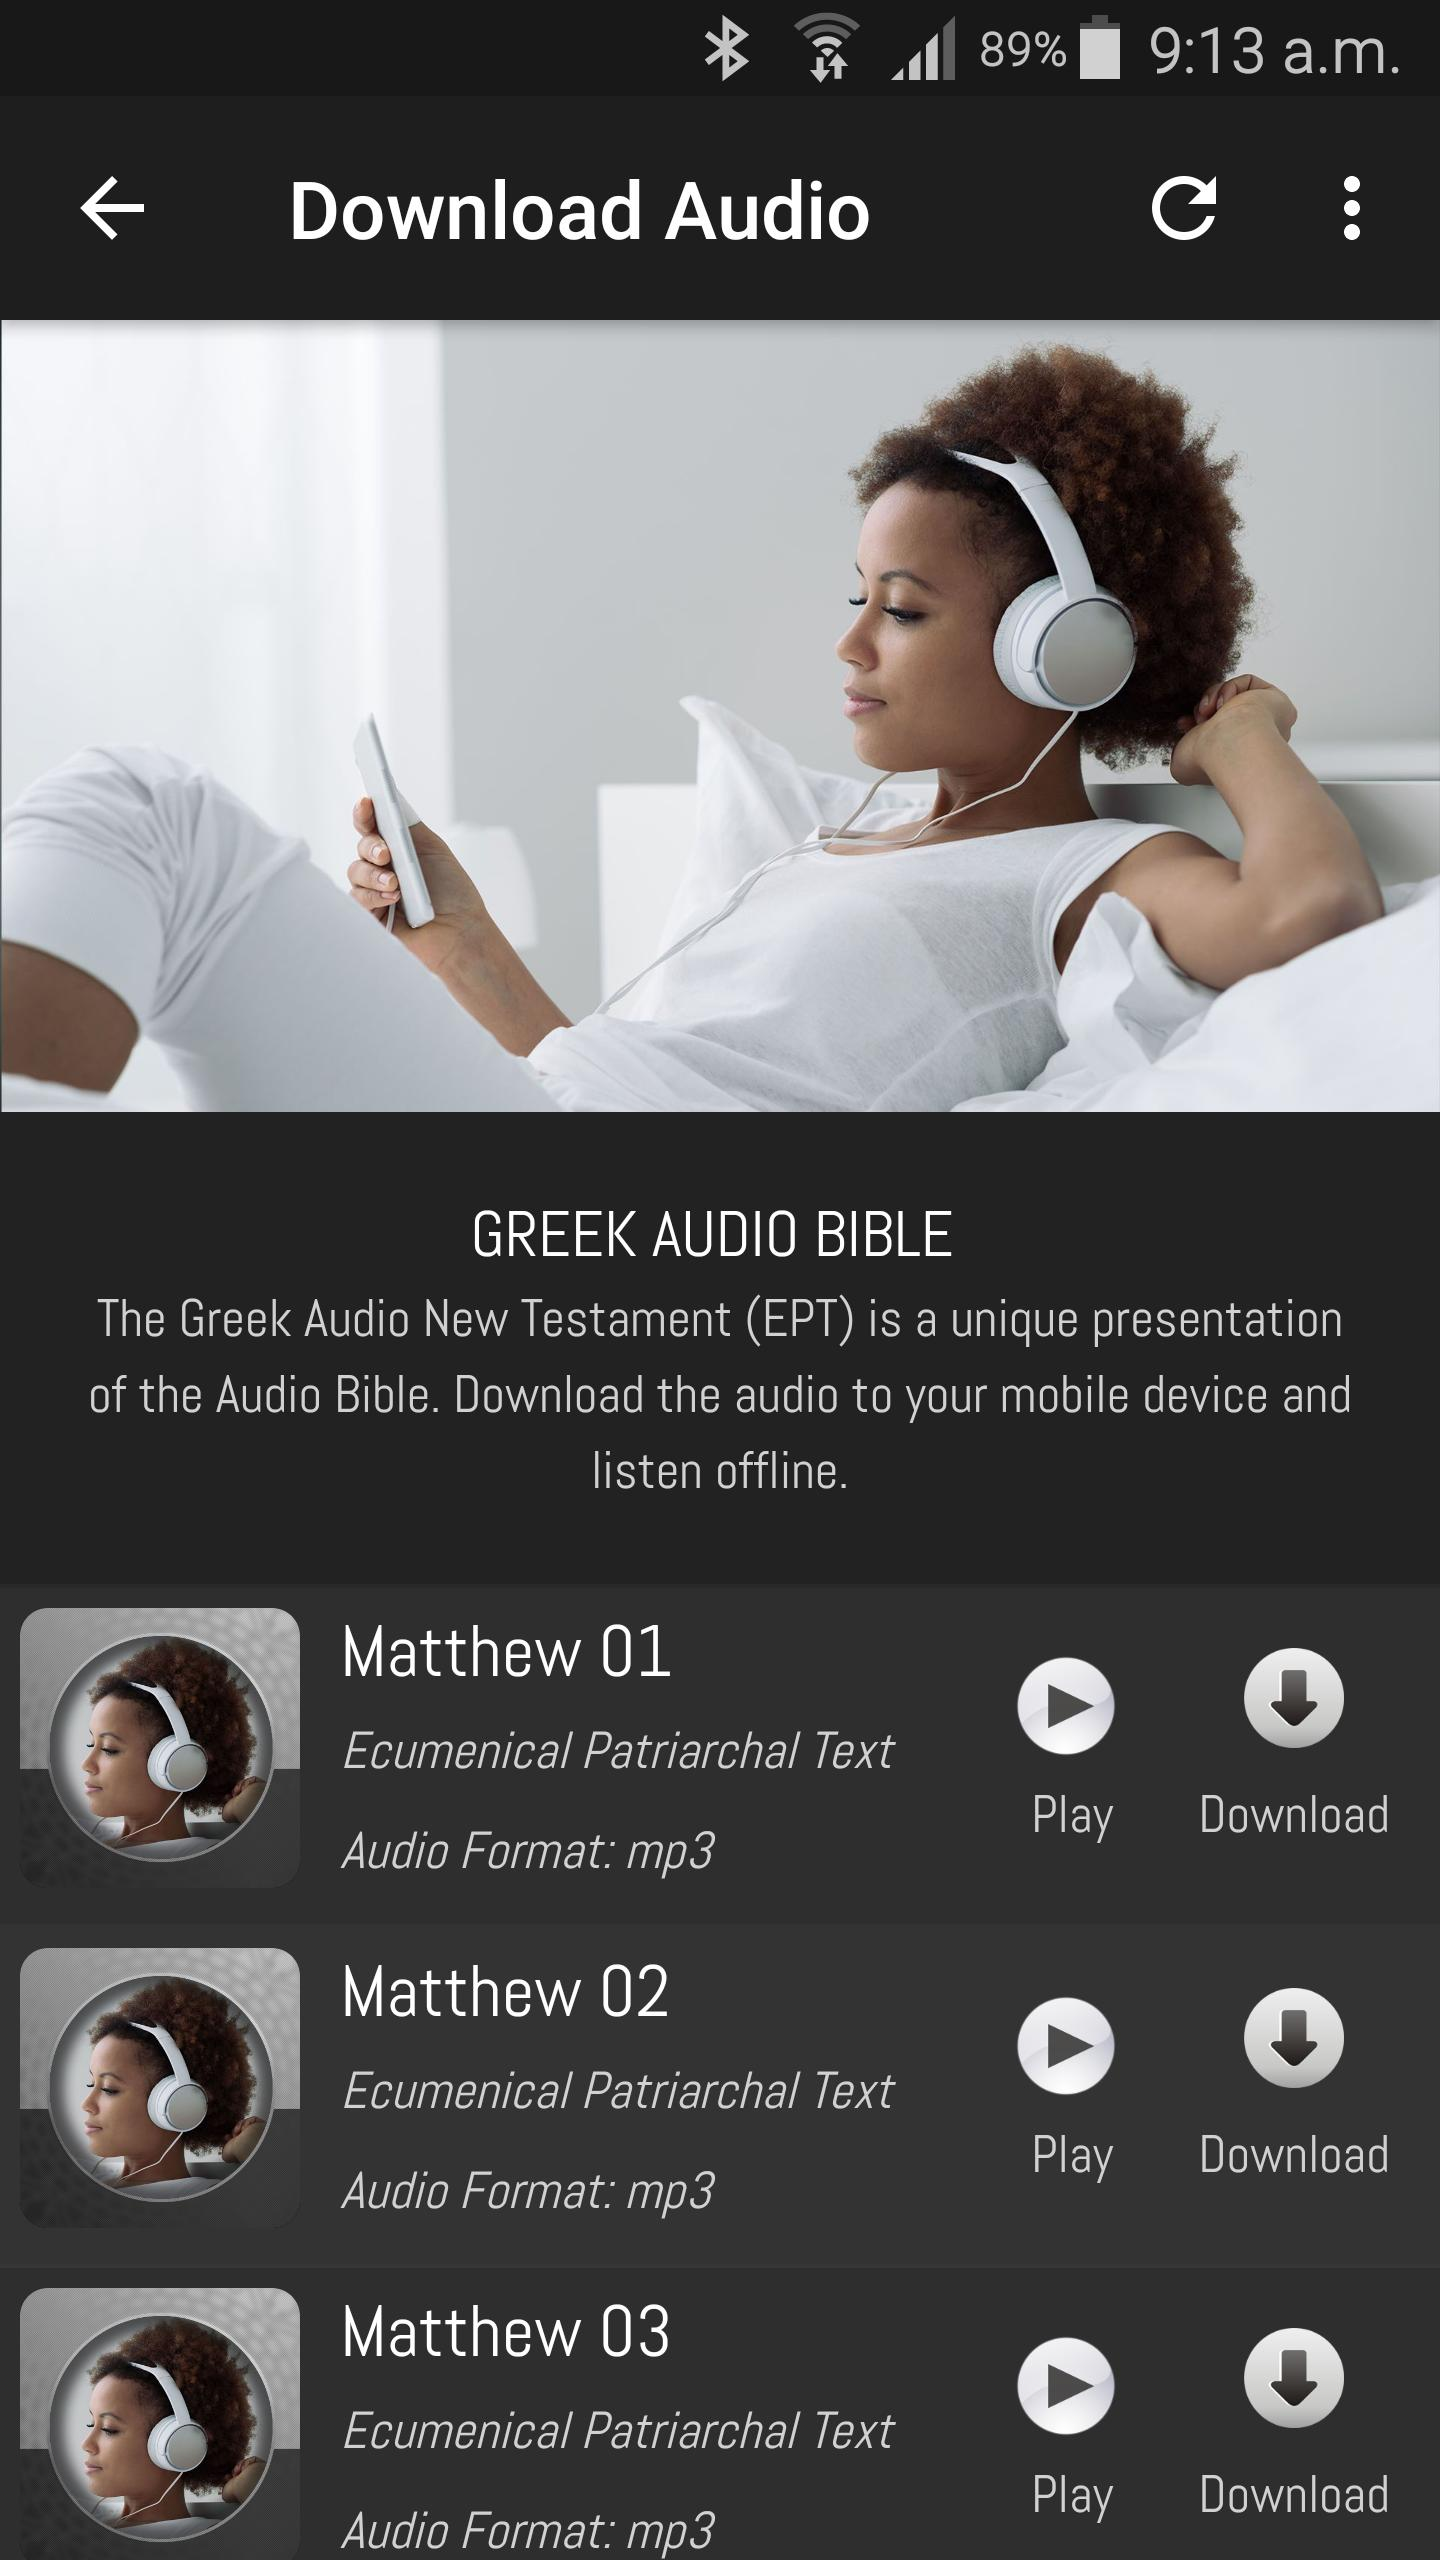 Greek Audio Bible for Android - APK Download